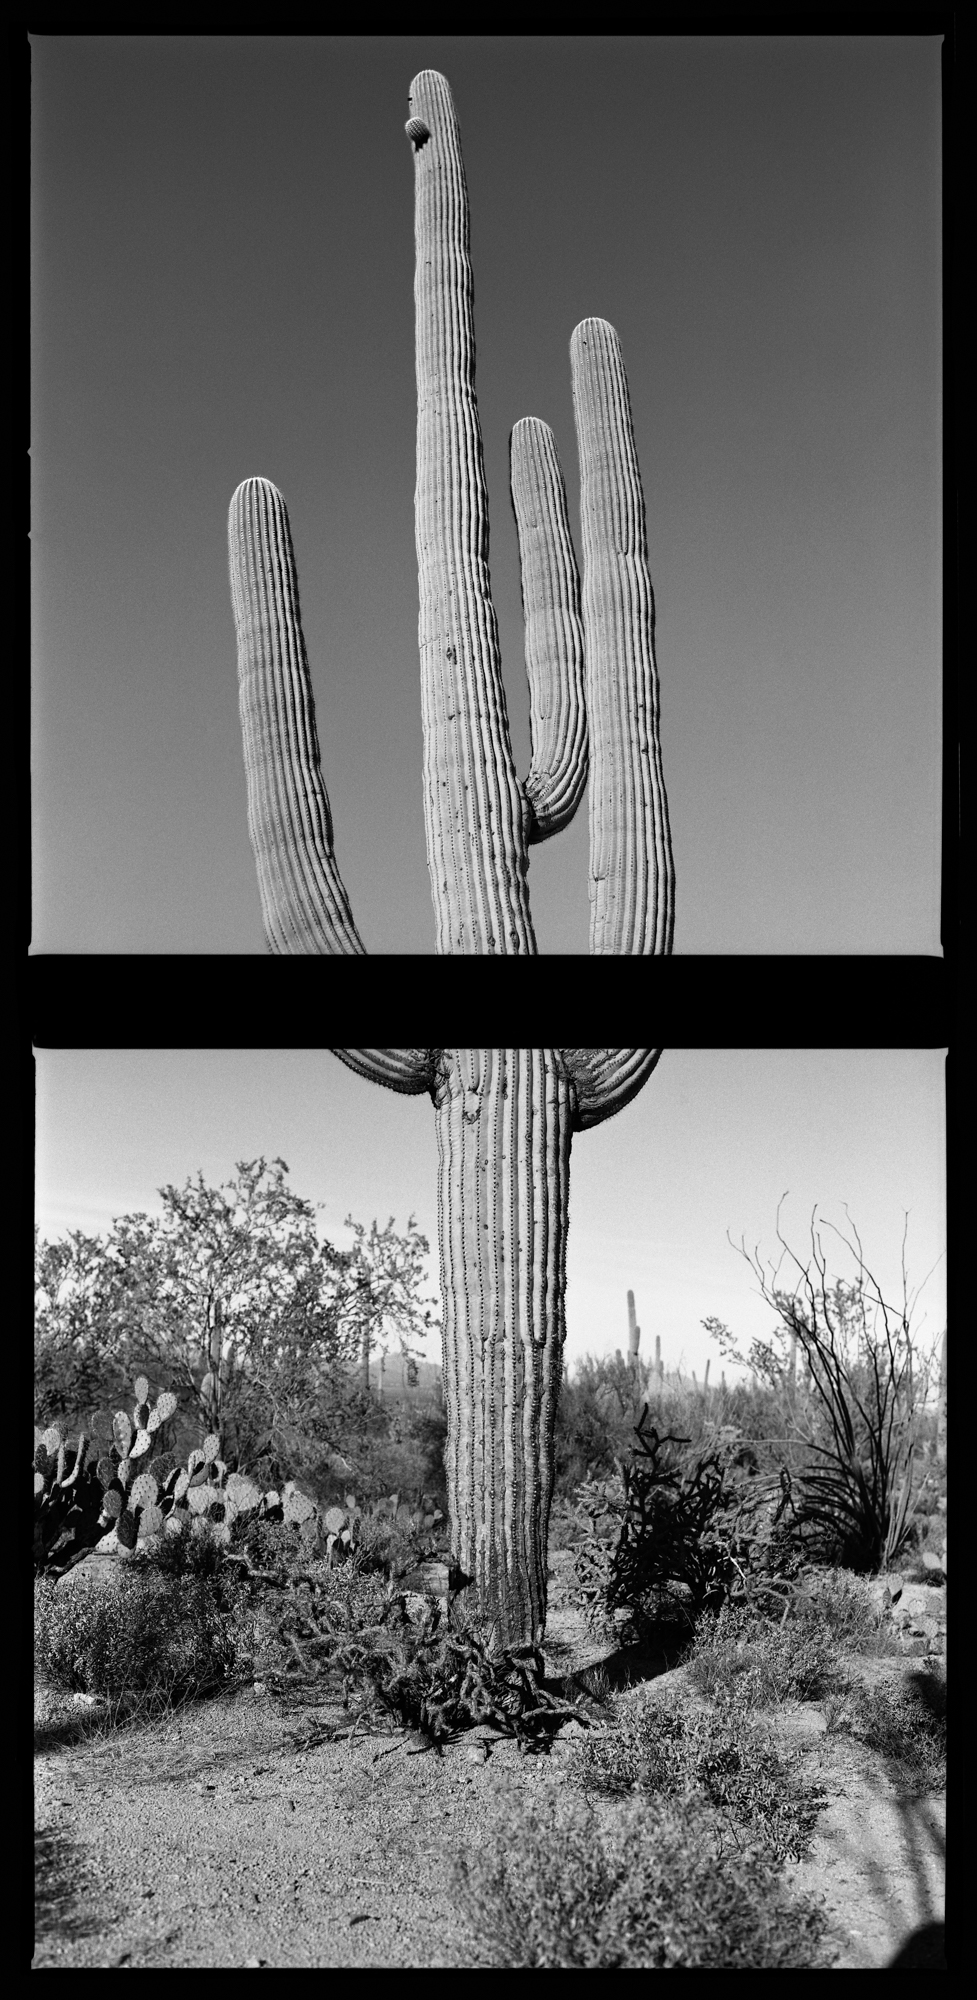 Black and white photograph, 35mm, landscape, cactus